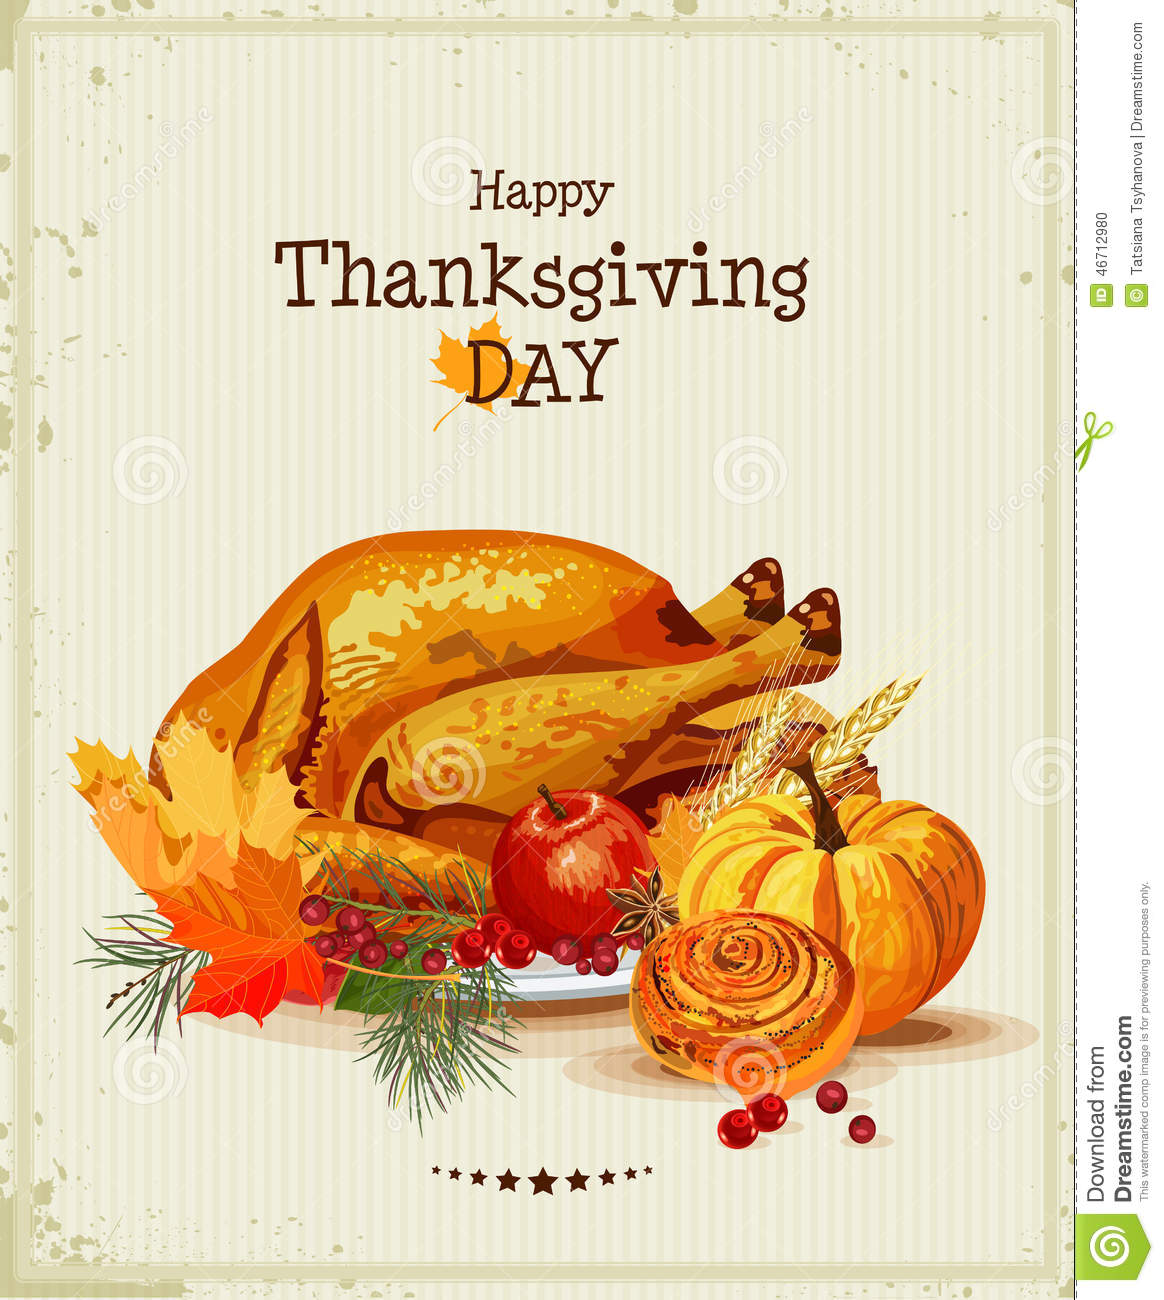 Thankful Wallpaper Quotes Thanksgiving Day Greeting Card With Turkey Pumpkin